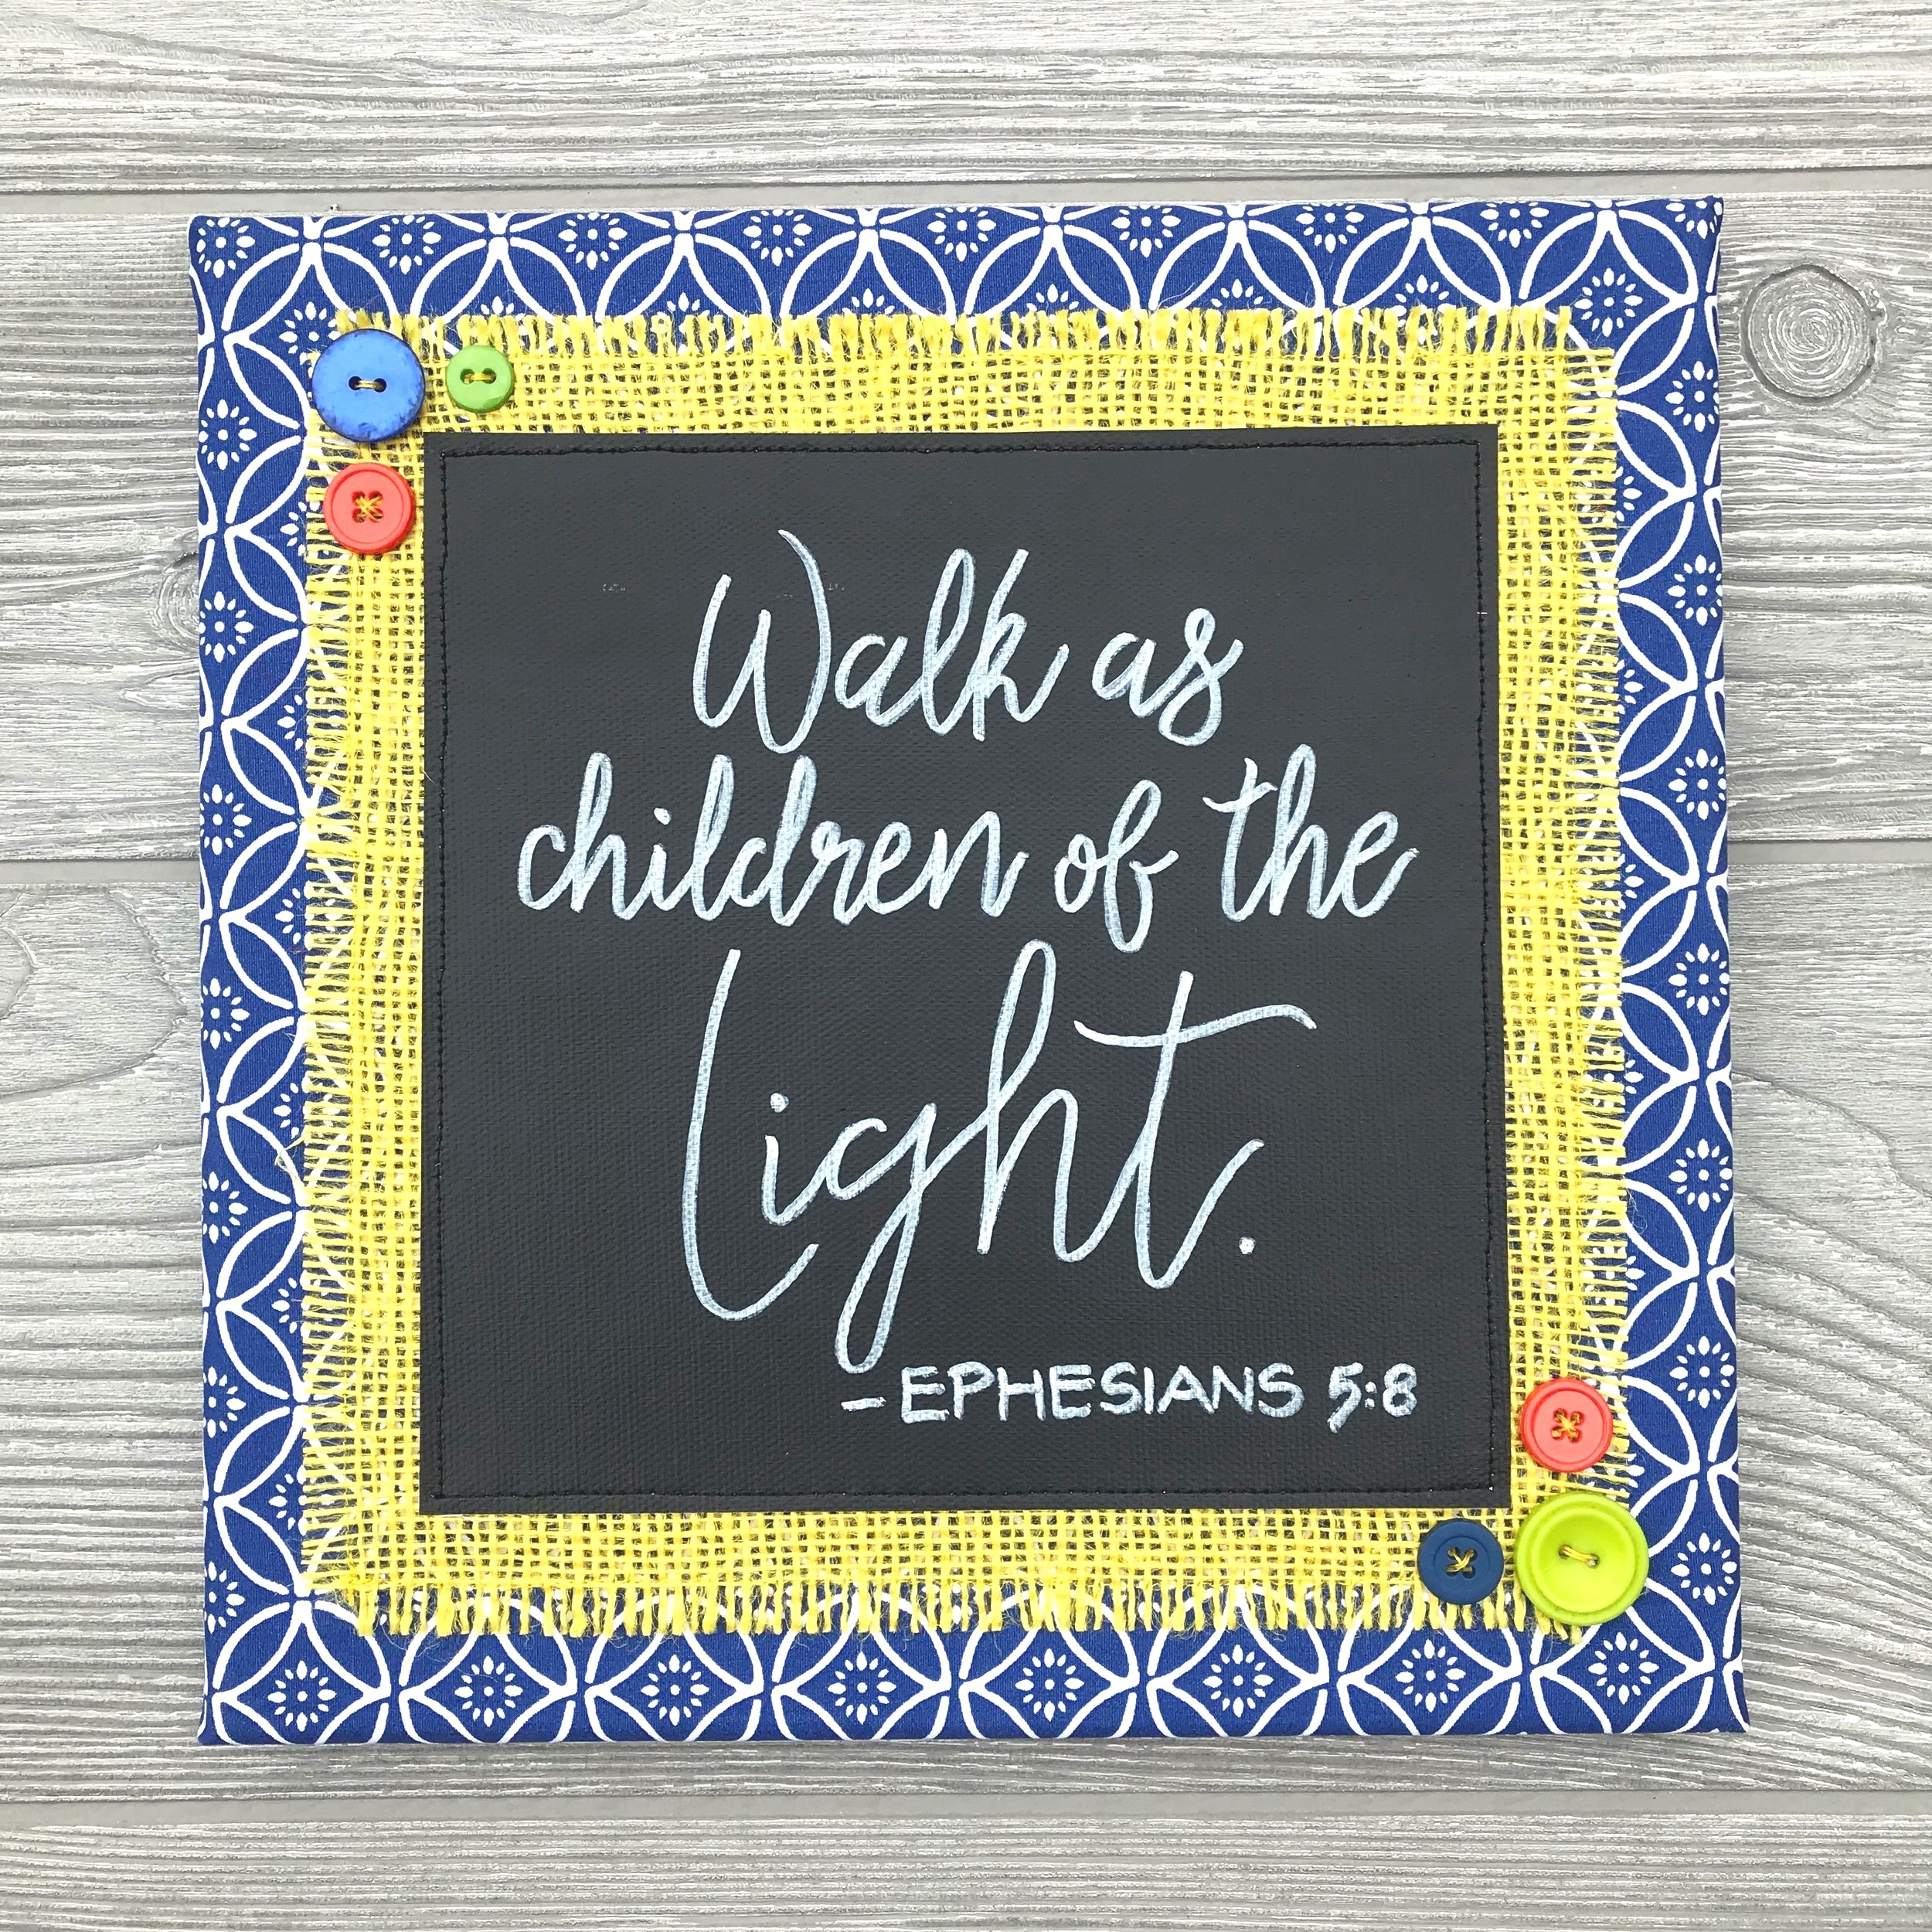 "Walk As Children of the Light - It's no secret that sunshine makes us happy. We crave natural light and the comfort it brings to our souls. This passage from the book of Ephesians reminds us that we should always strive to walk in the light. Isn't that a lovely idea?10""x10"" Handmade ArtworkElements: hand-painted and hand-lettered canvas, colorful burlap, patterned fabric, coordinating buttons, wood frame, claw hangerPrice: $30 (includes US-based shipping)"